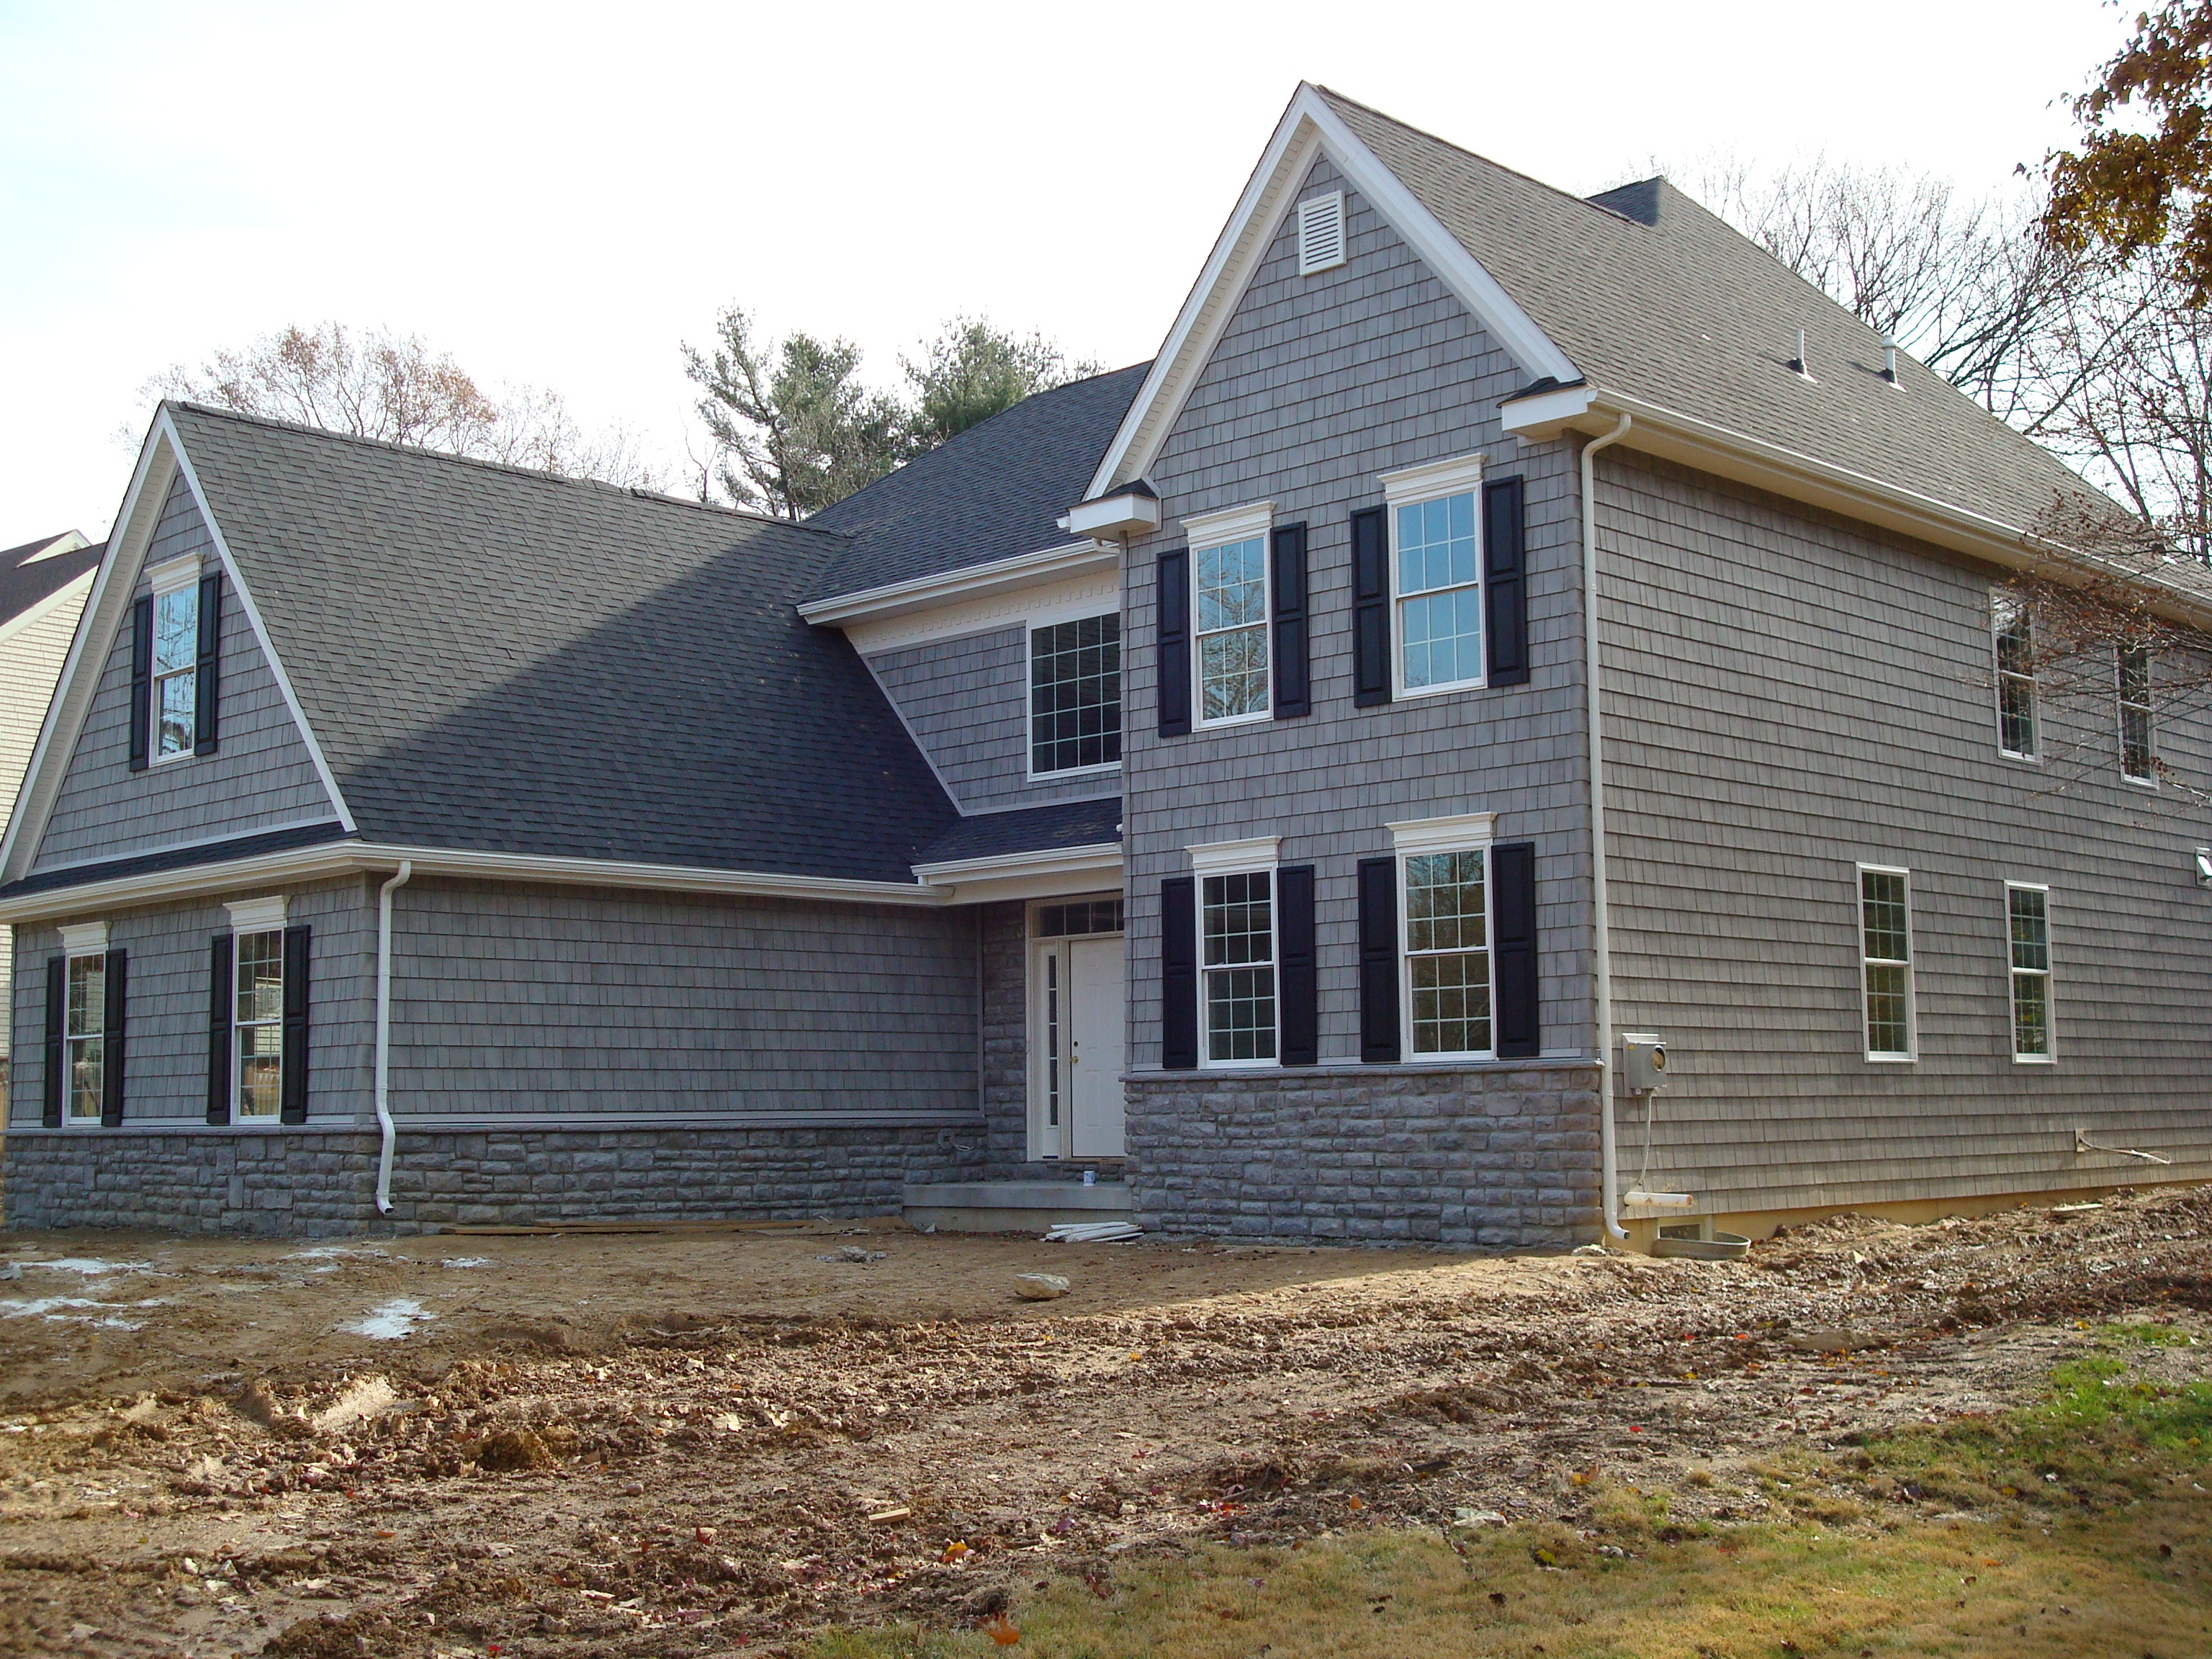 House exterior home remodeling contractors house building - Exterior materials for buildings ...